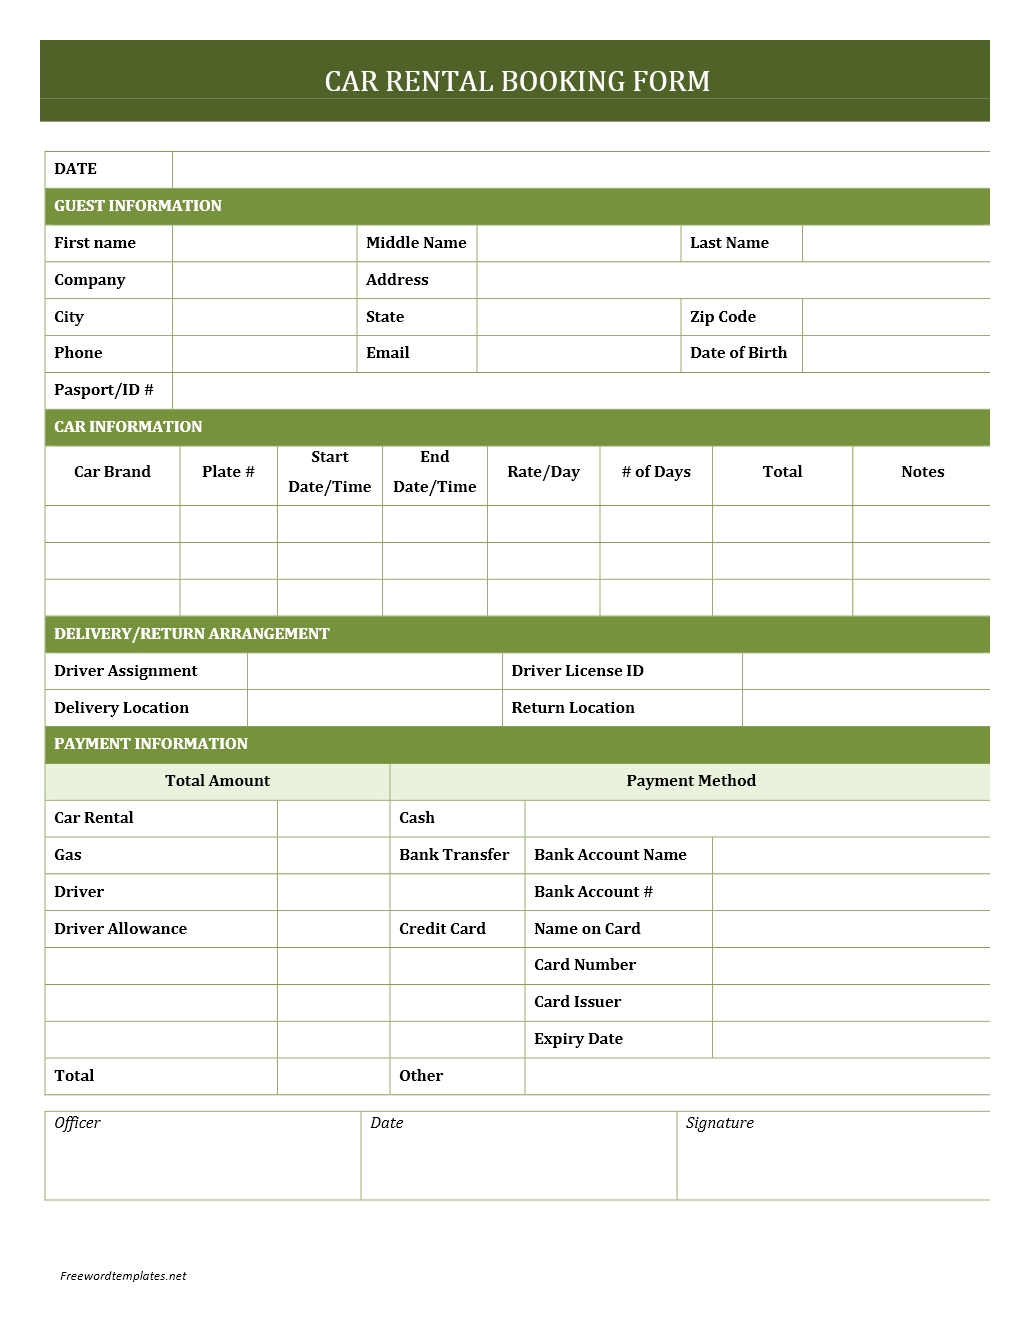 car rental booking form wordtemplates net car rental booking form template